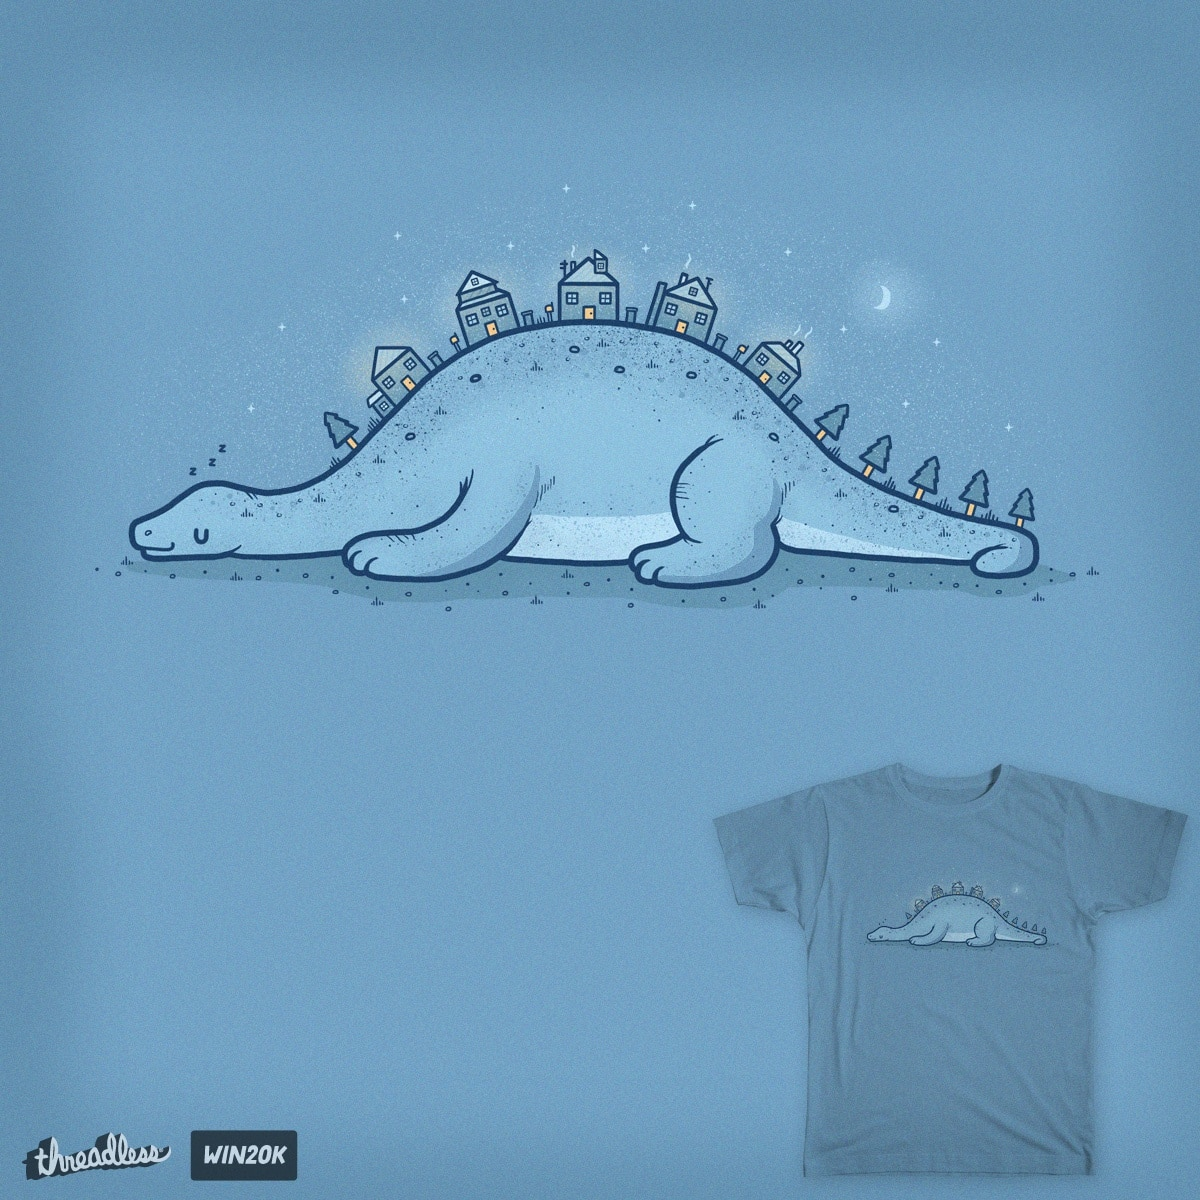 Homes on the hill by randyotter3000 on Threadless